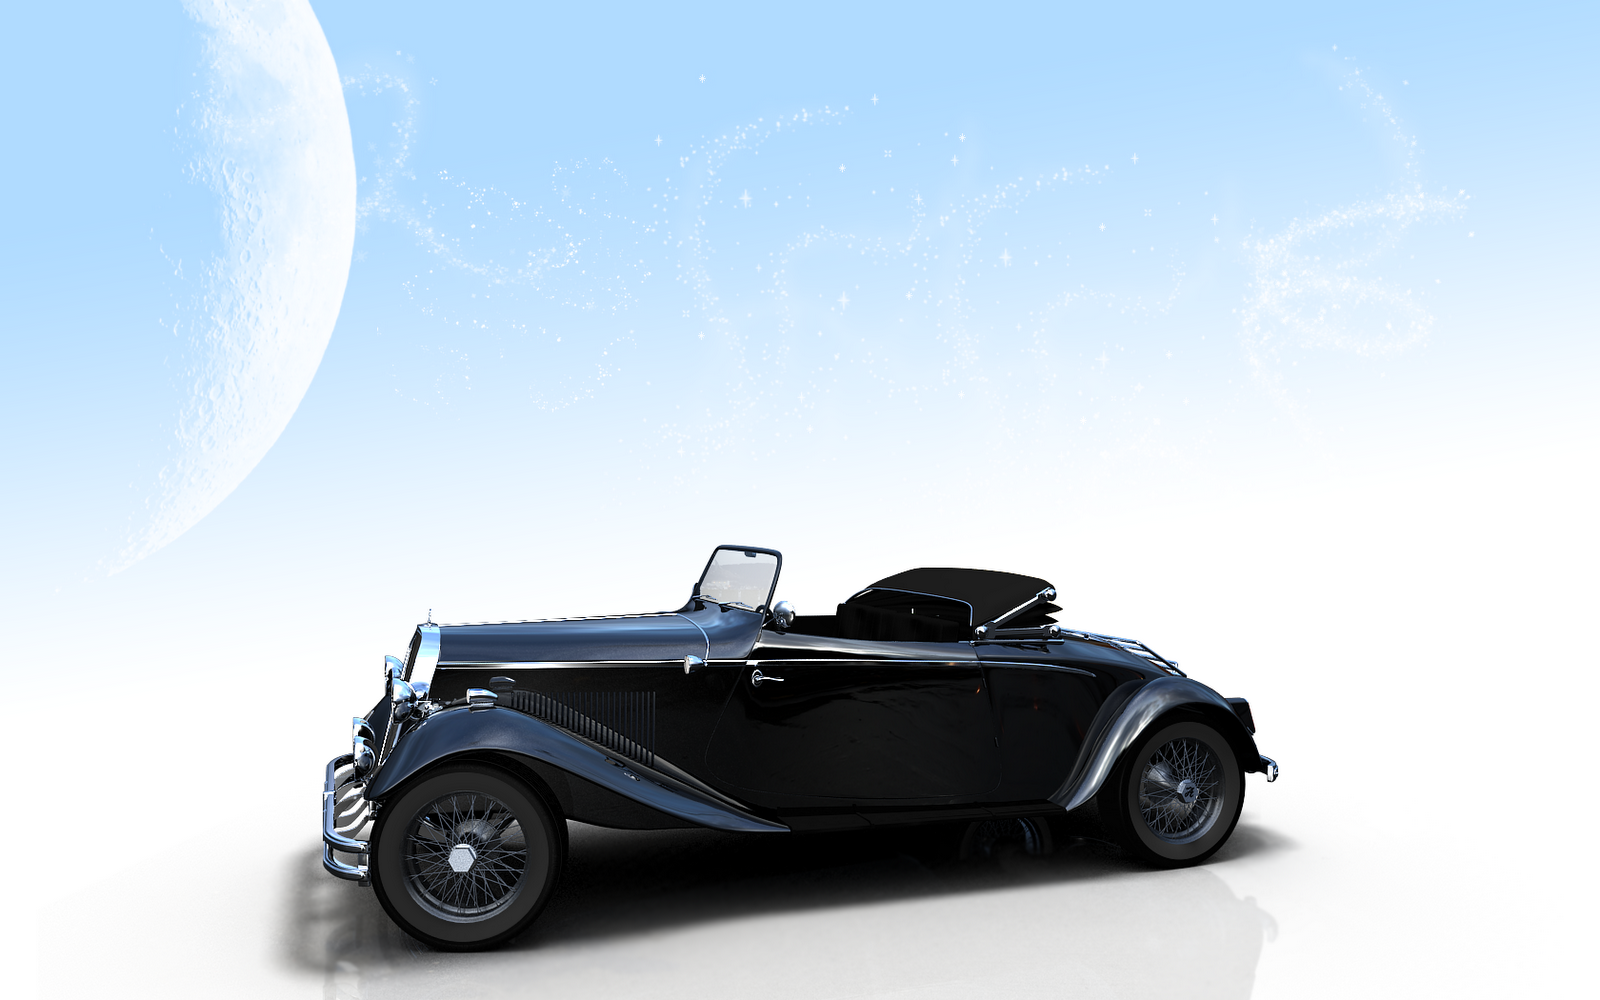 Vintage Car Wallpapers Cars And Carriages